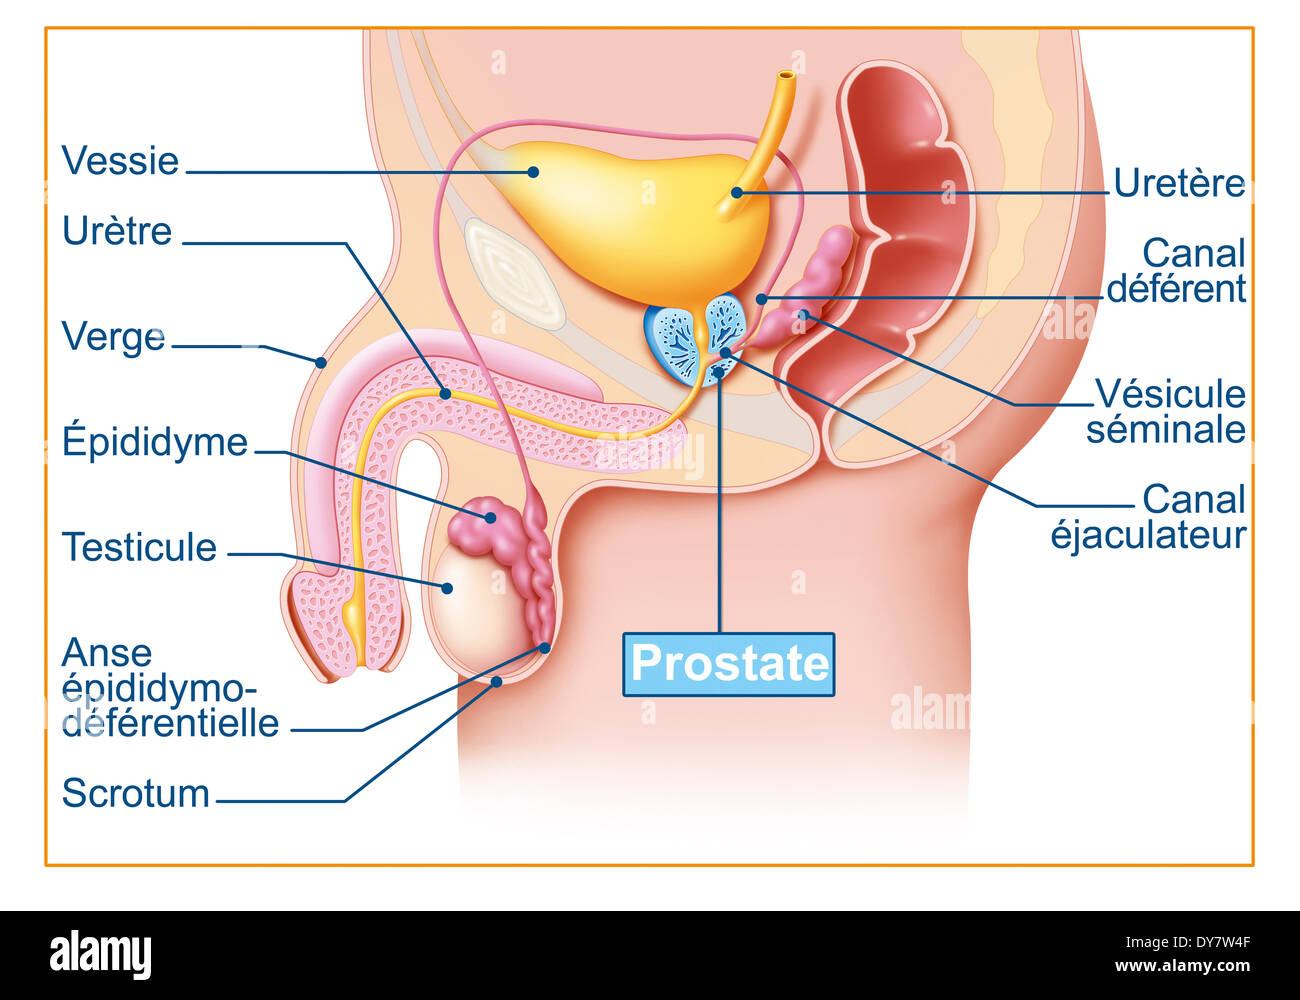 Male Genital System Drawing Stock Photo 68400207 Alamy